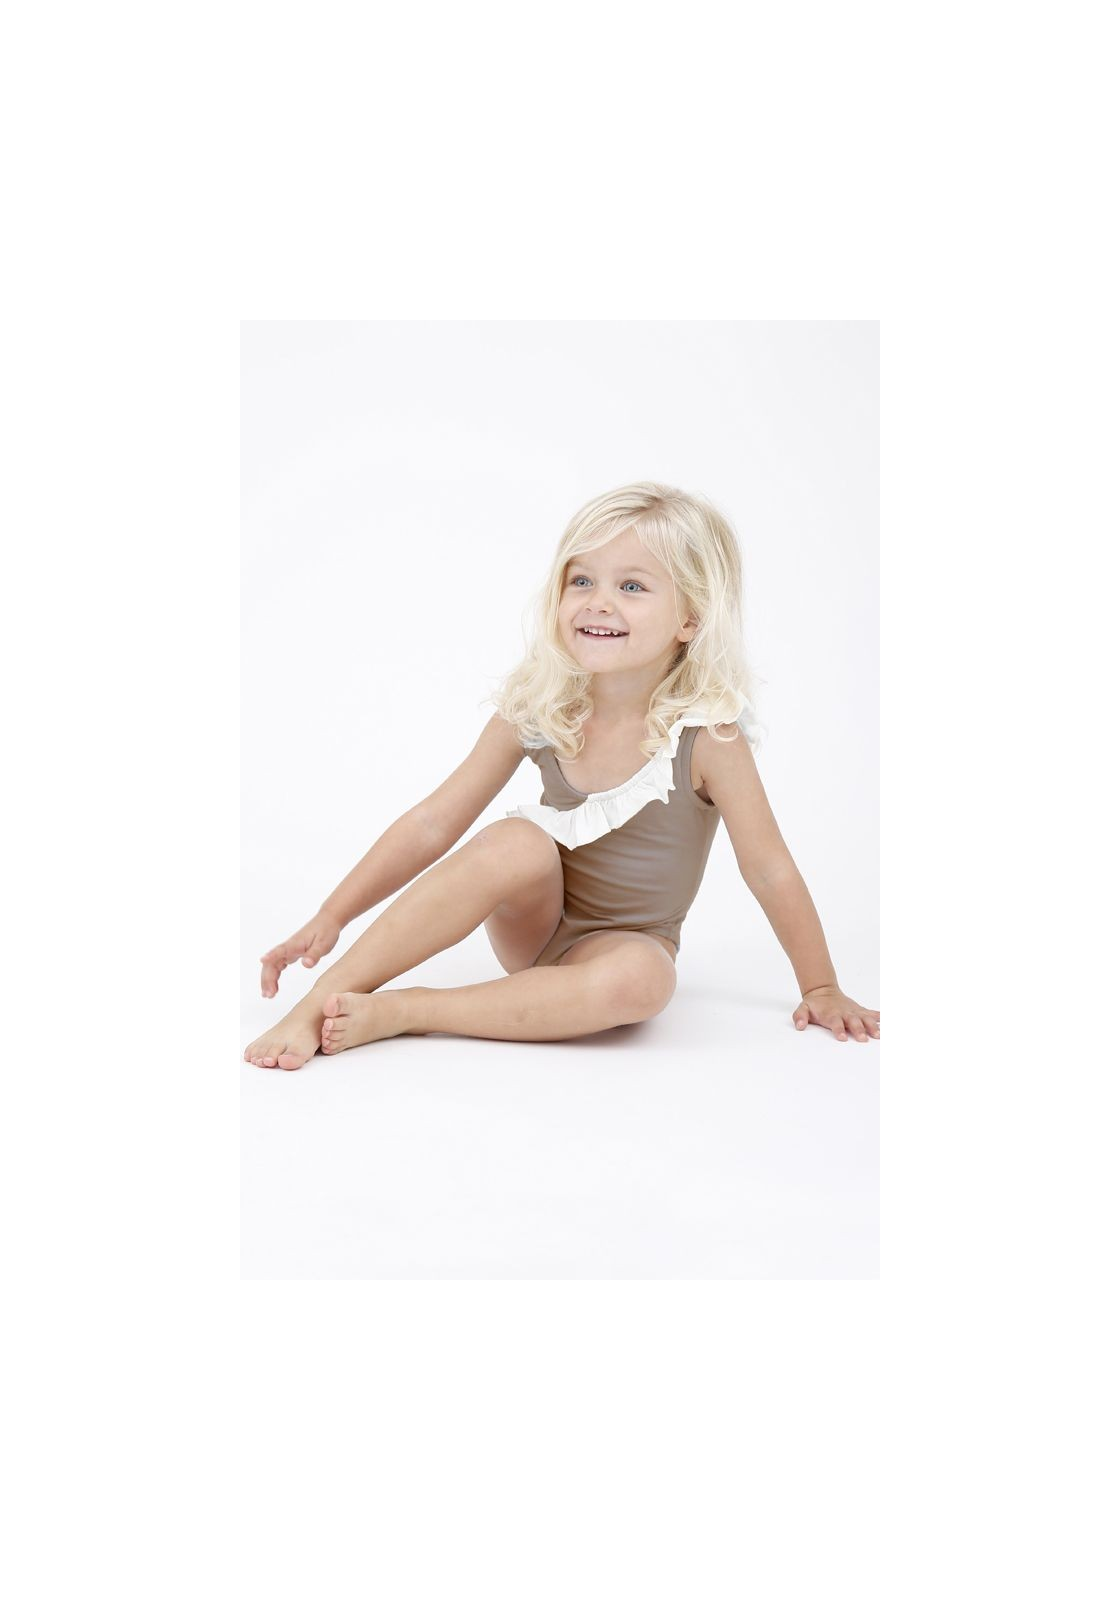 c7cbbb36423fe One piece swimsuit for children in beige and white with ruffles